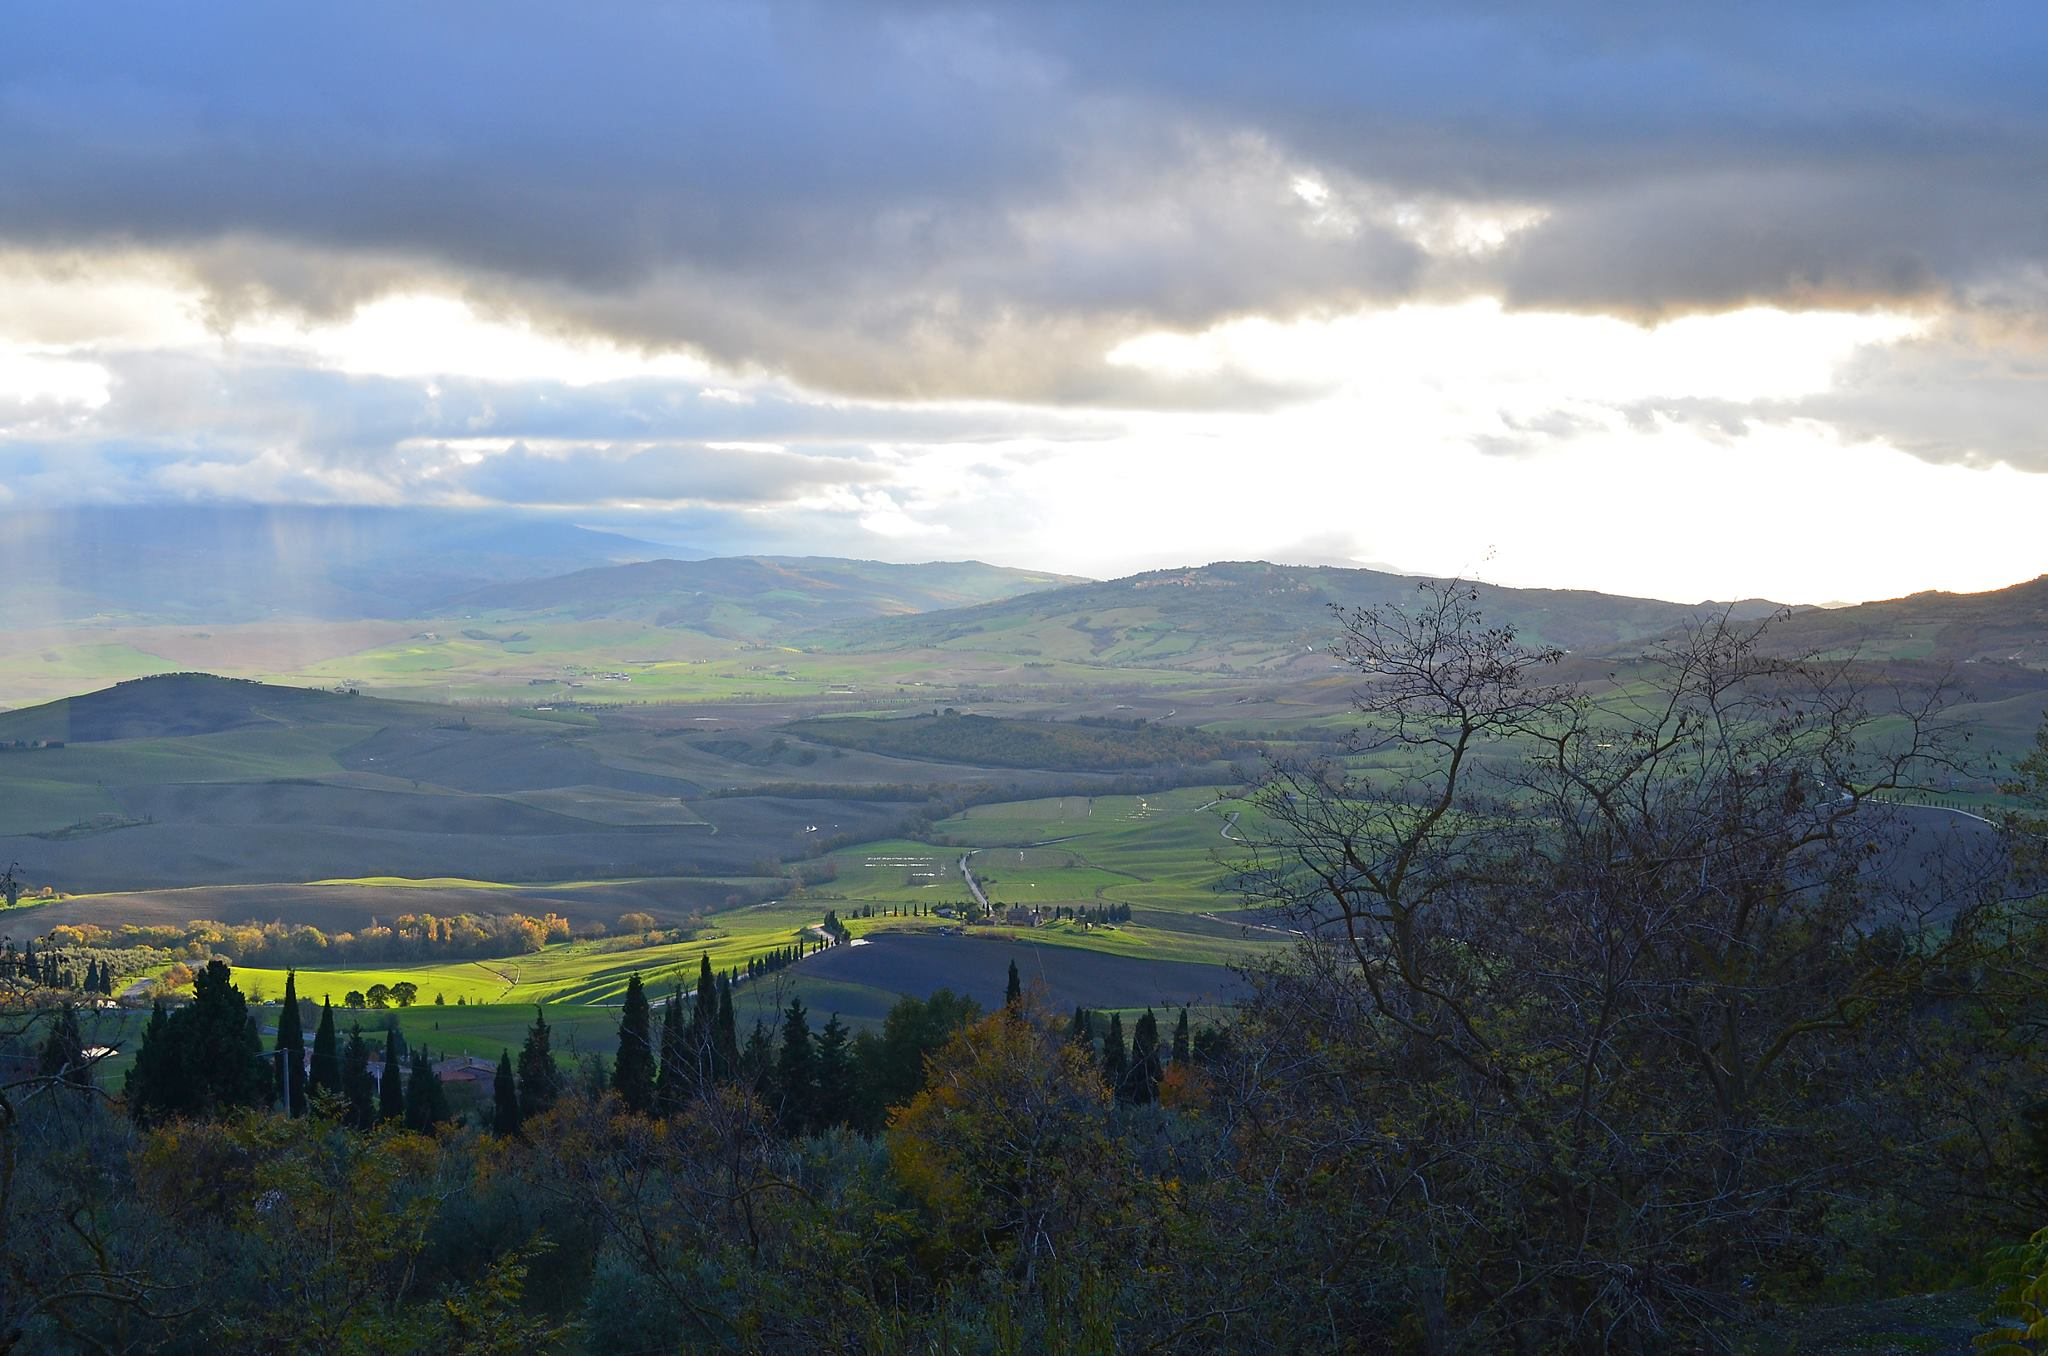 Pienza INTERVIEW: For The Love of Italy